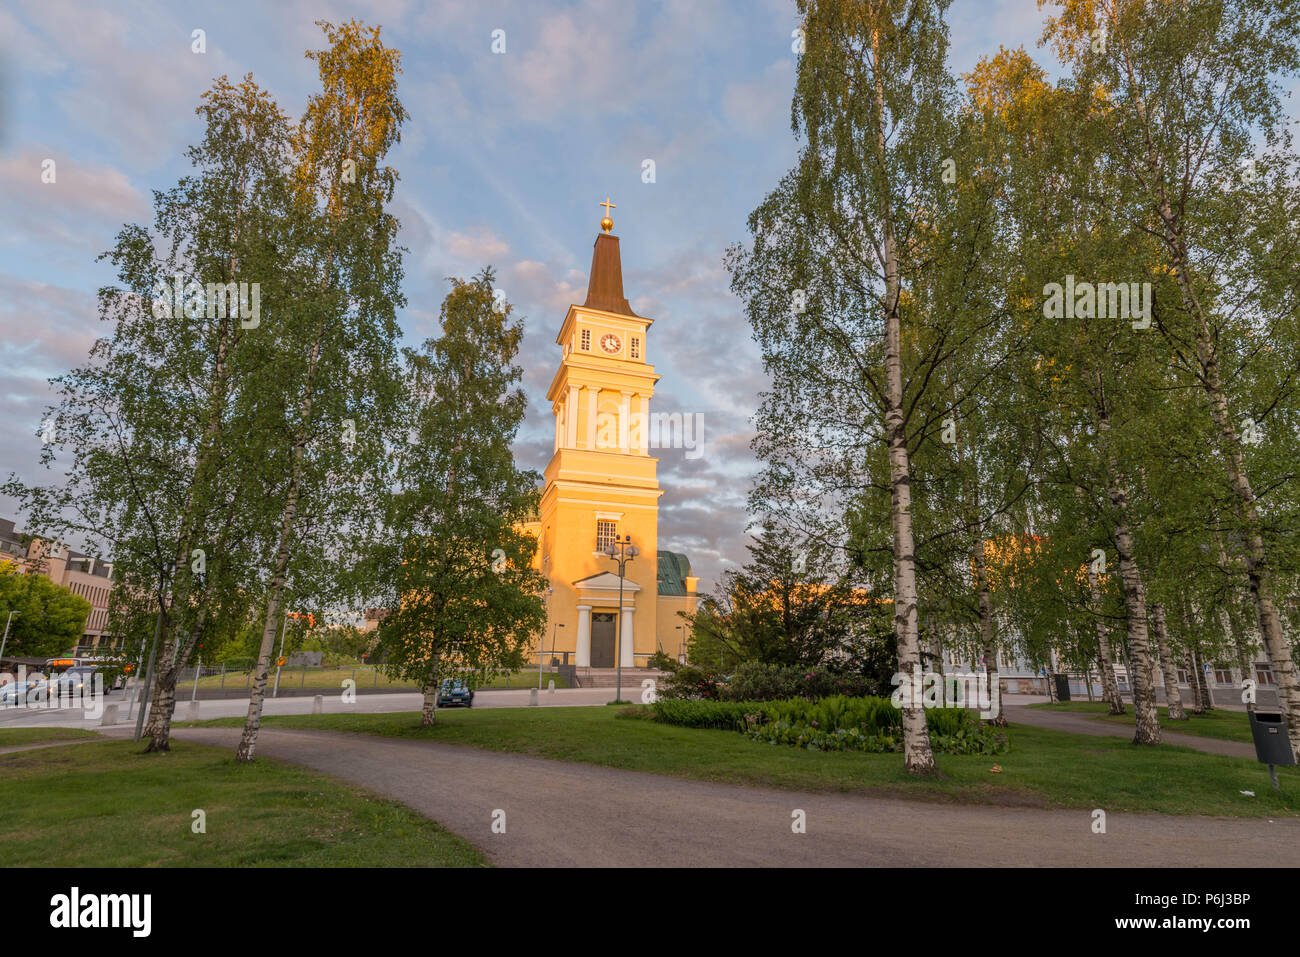 Oulu Cathedral in Finland - Stock Image